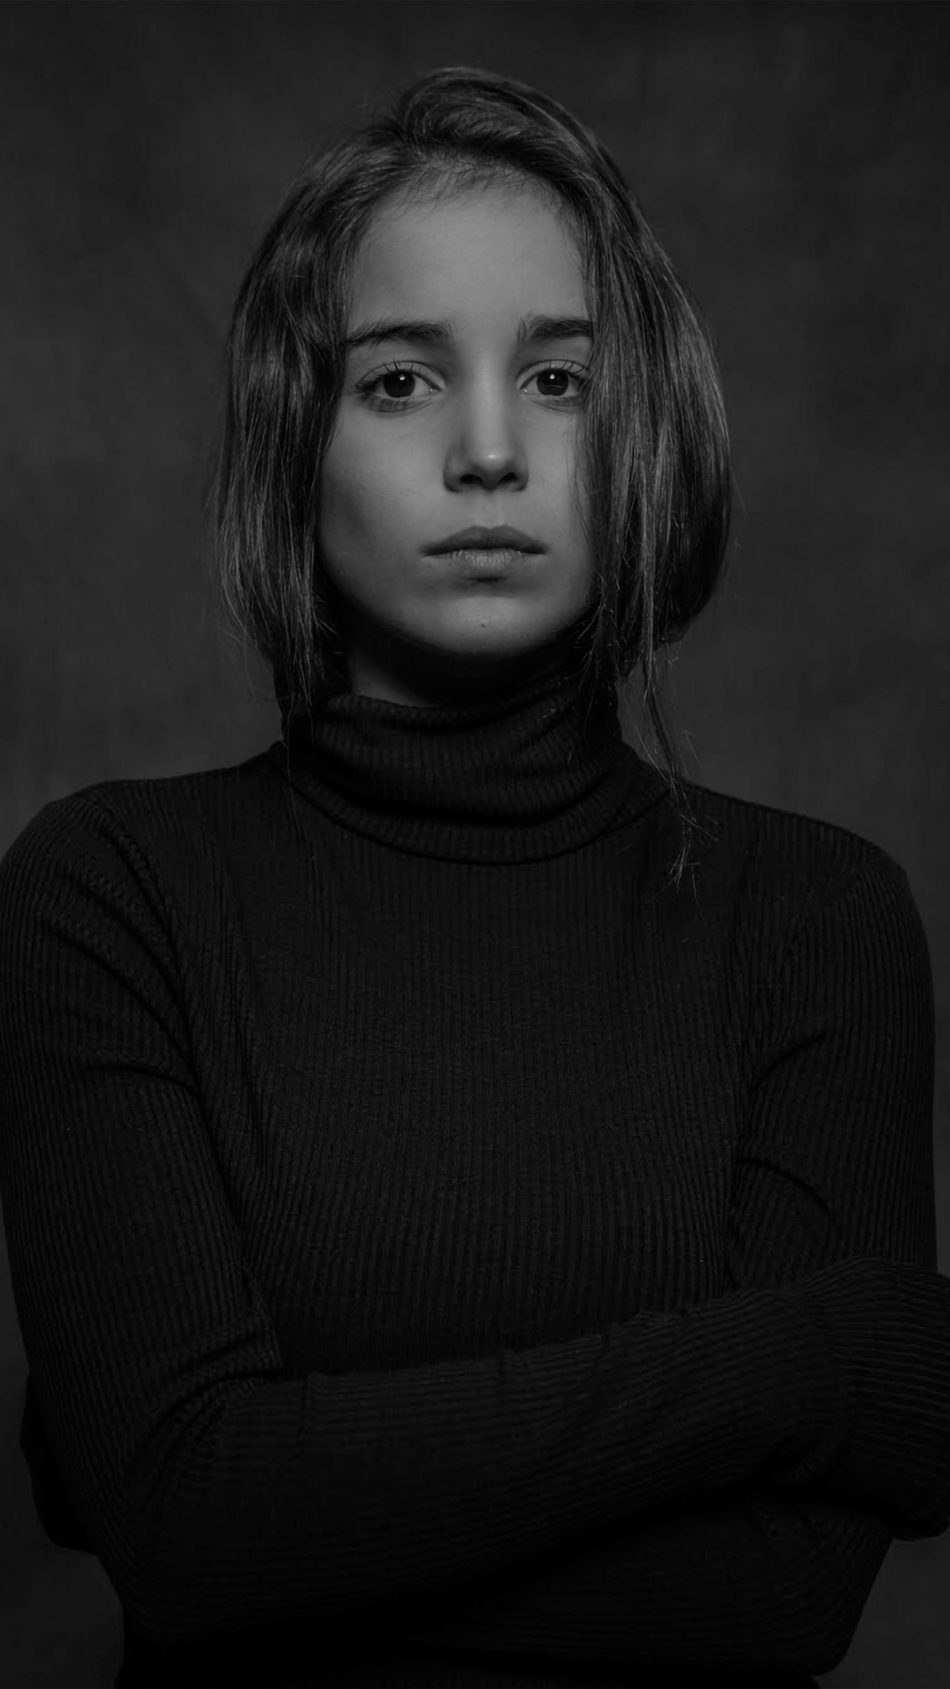 Alba Baptista Monochrome Photoshoot 4K Ultra HD Mobile Wallpaper